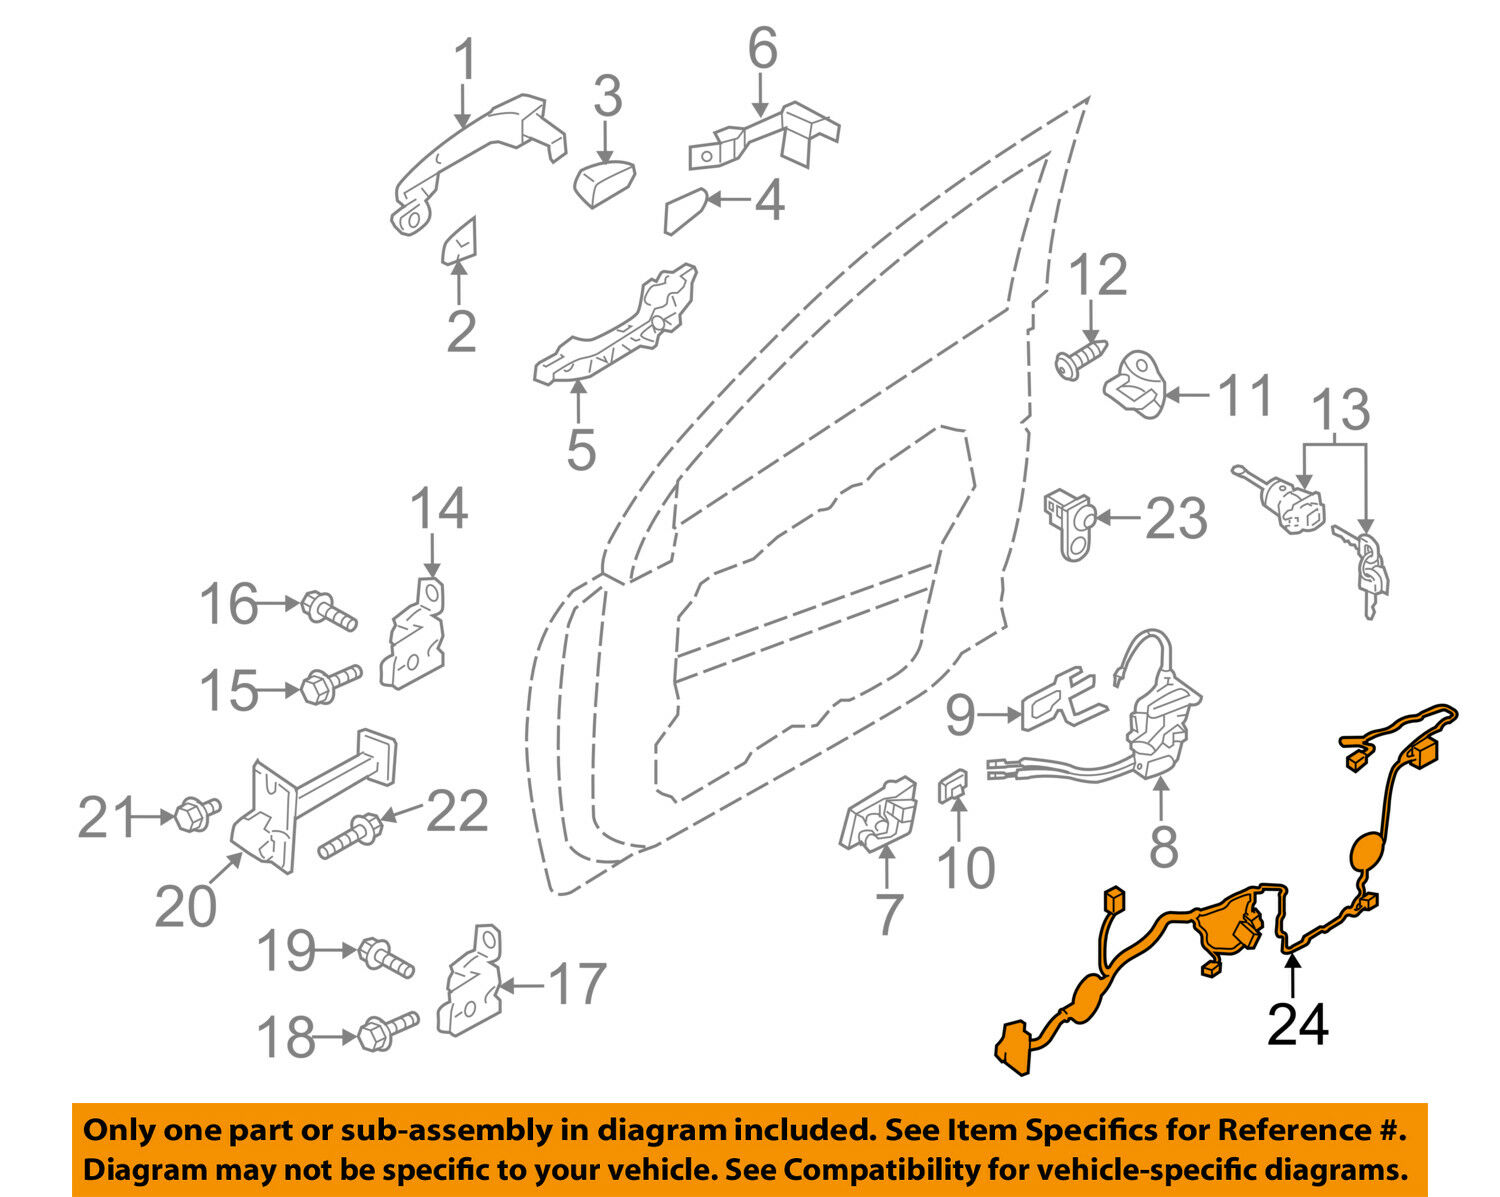 Hyundai Sonata Front Left Lh Door Wire Wiring Harness Oem 2011 2015 Diagram Norton Secured Powered By Verisign